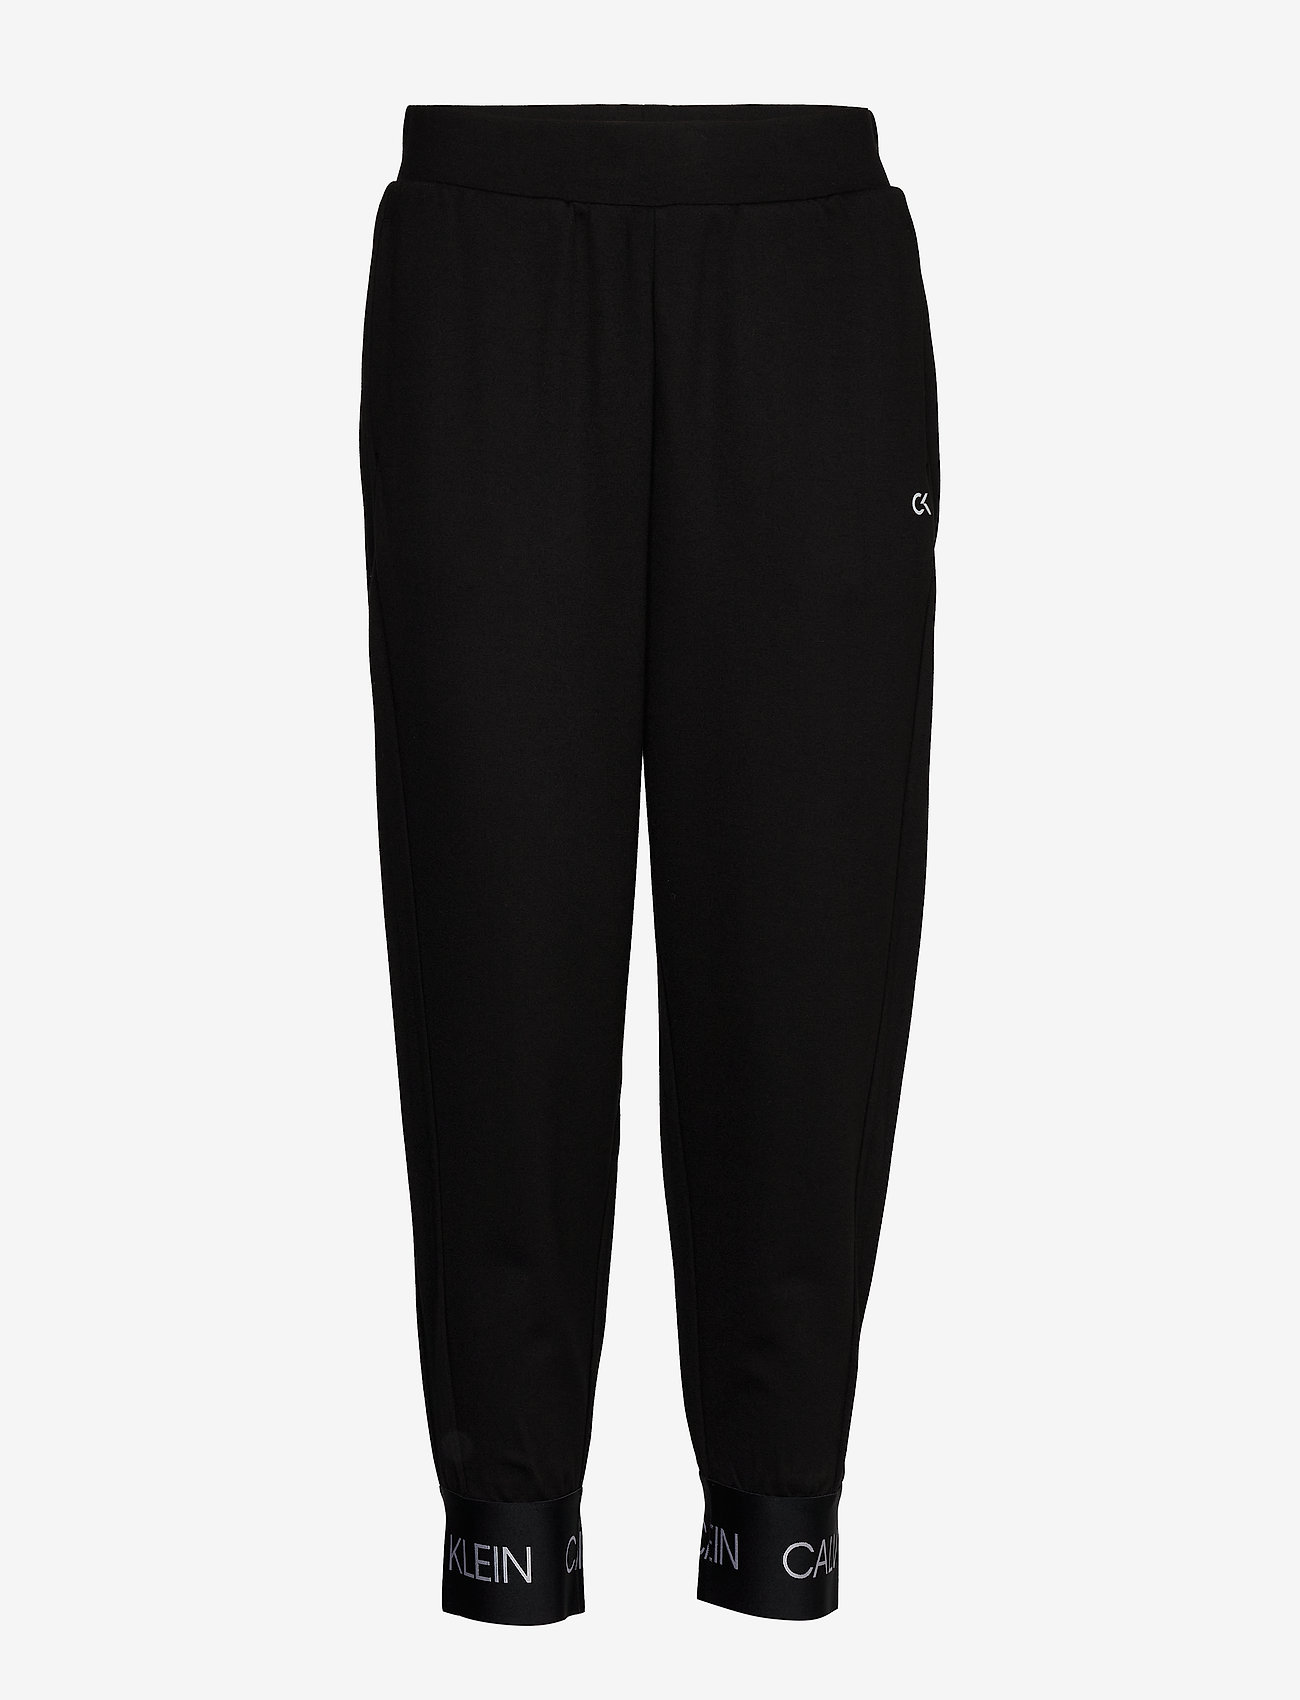 Calvin Klein Performance - KNIT PANTS - sports pants - ck black - 0